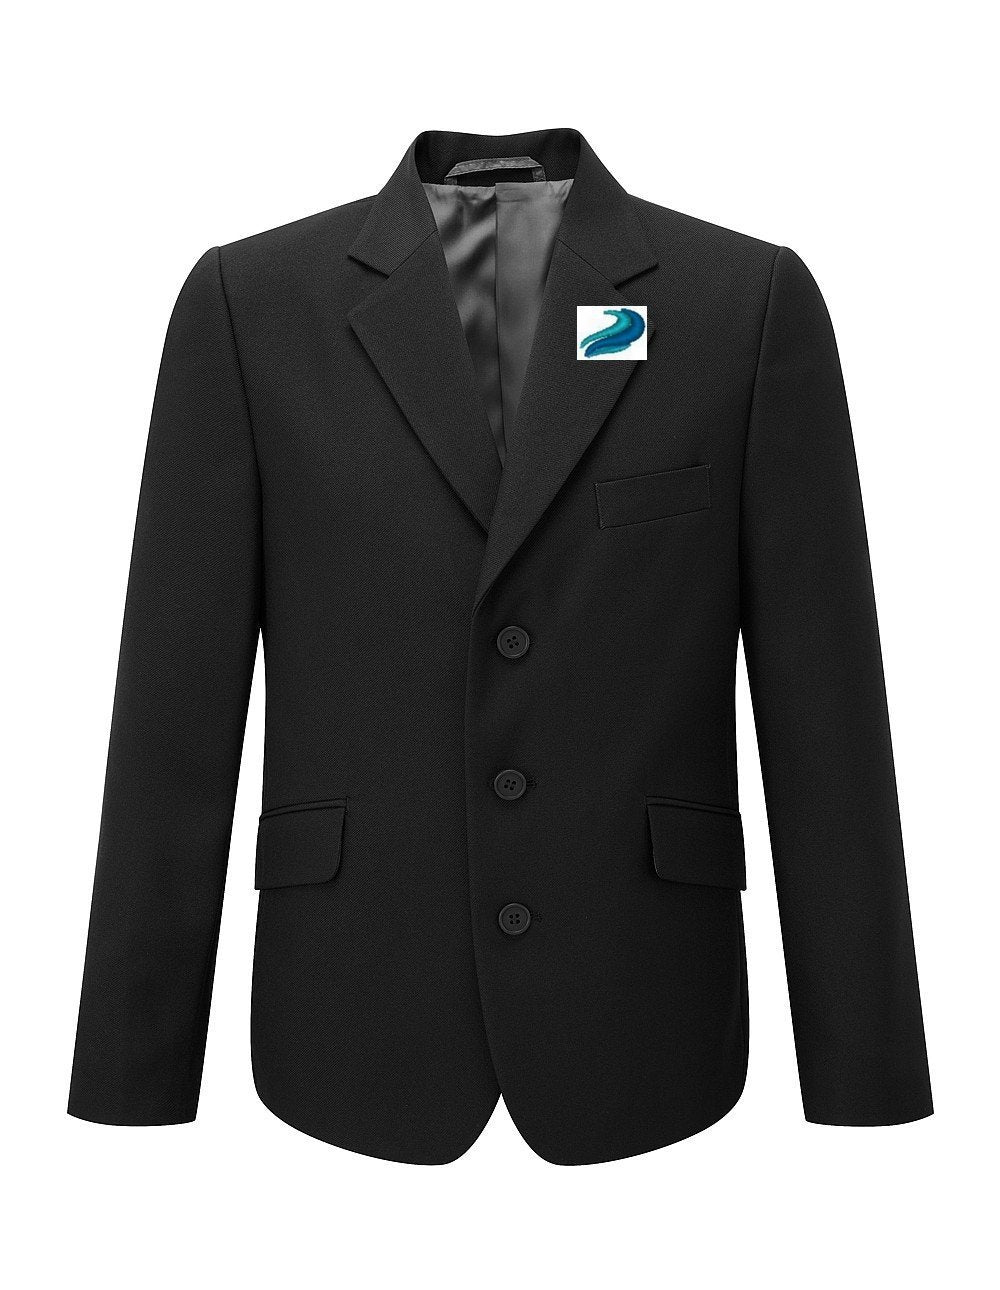 Chase High School - Designer Boys Jacket with School Logo | School Uniform Centres